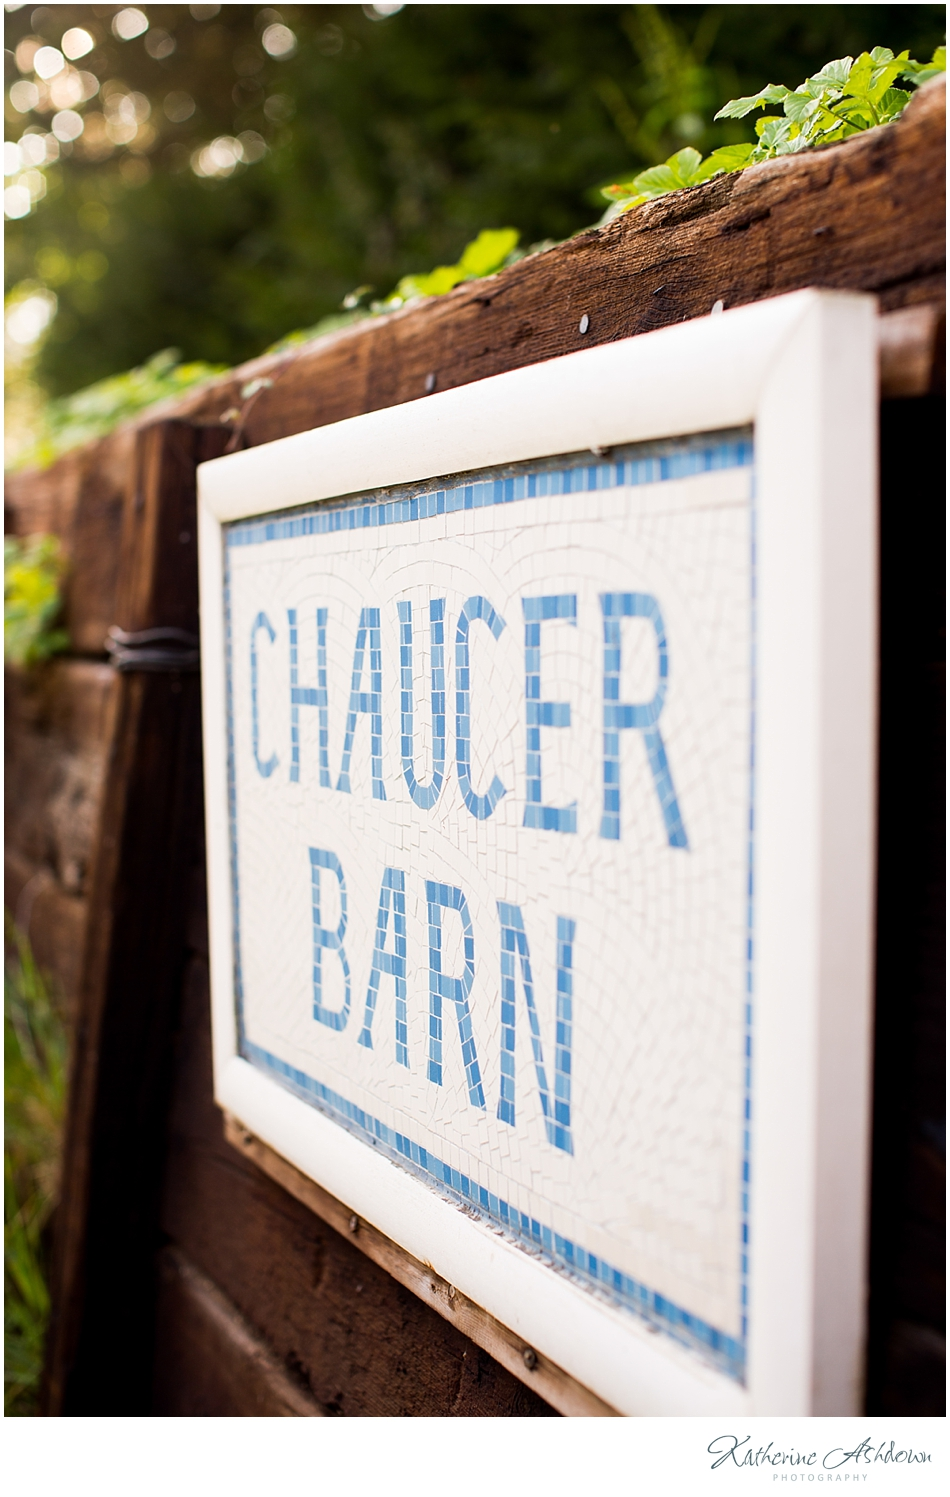 Chaucer Barn Wedding_001